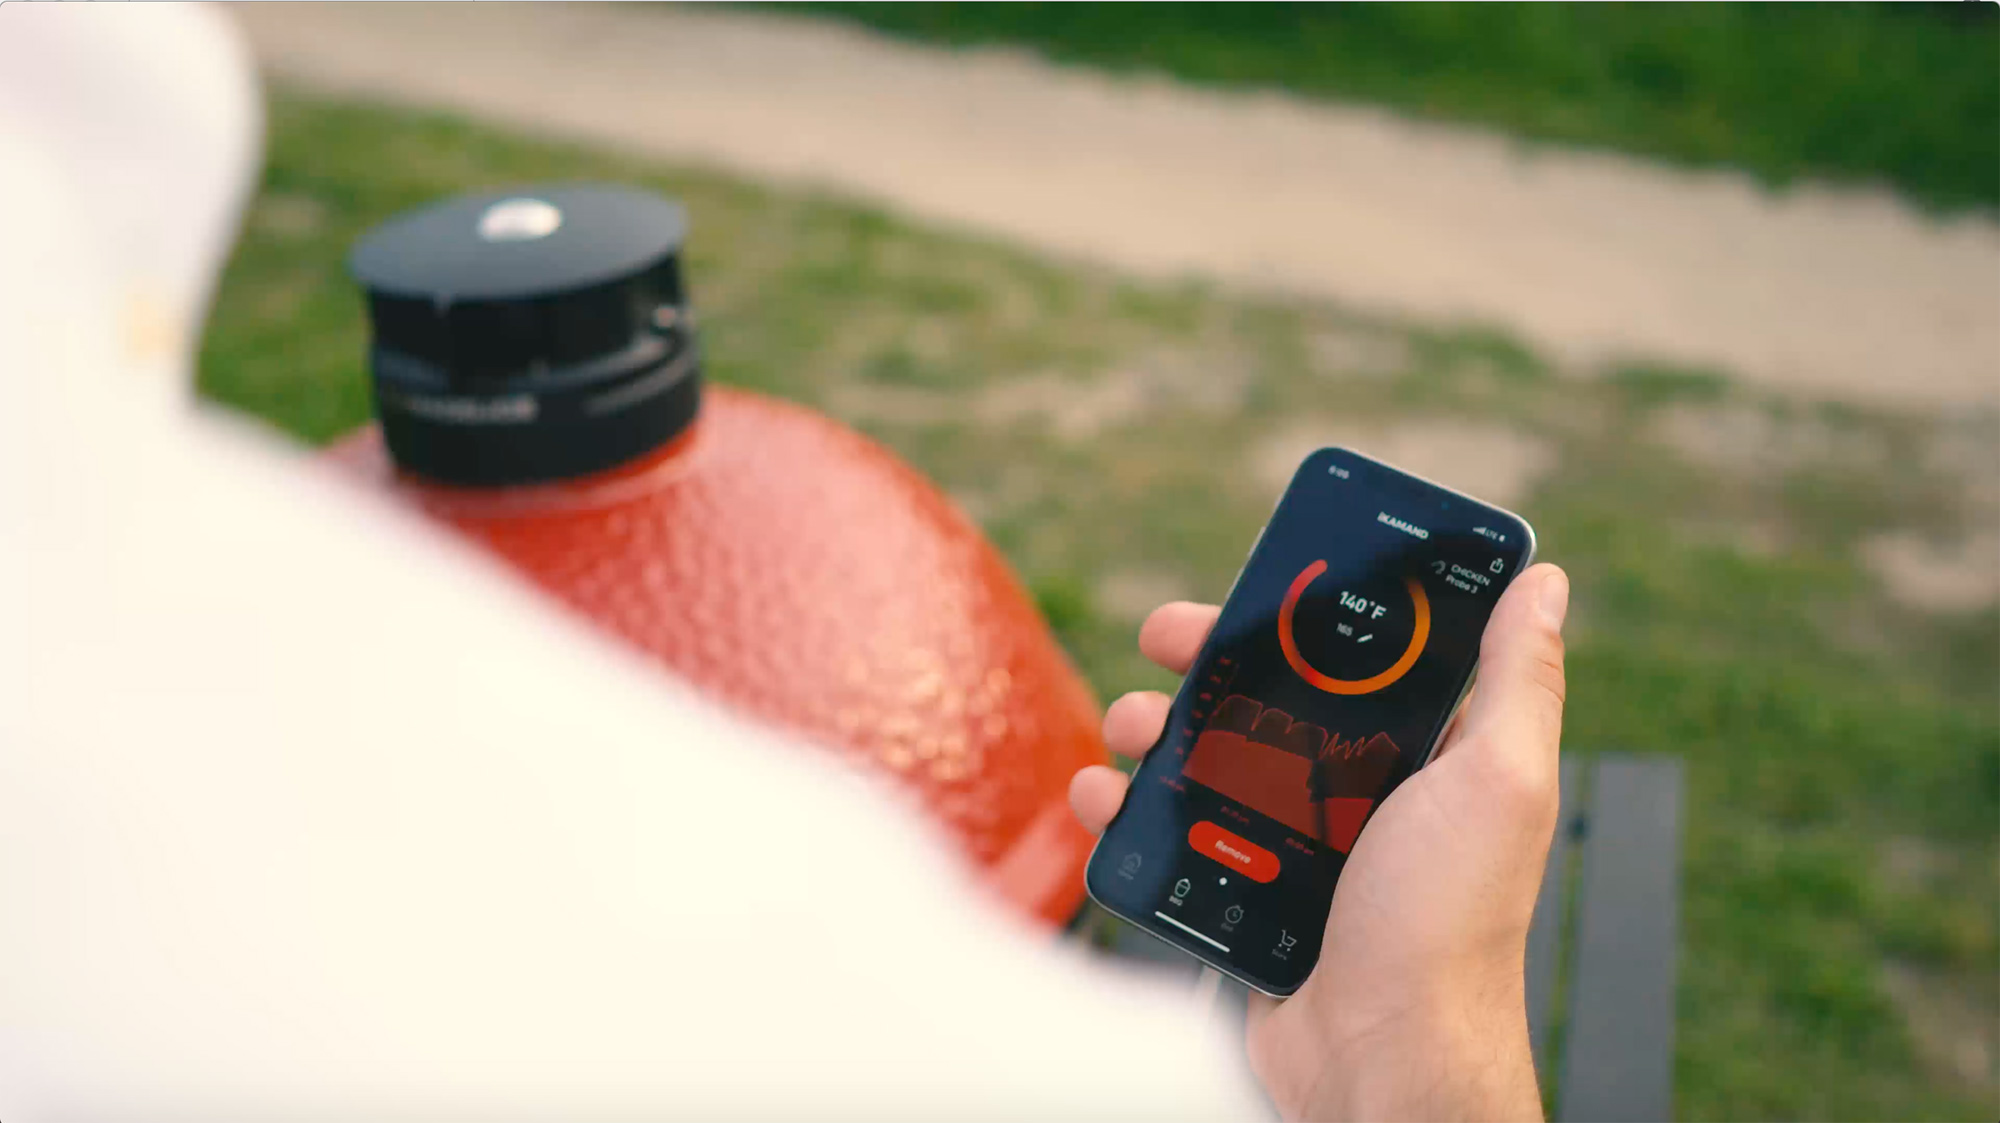 Man grilling with the iKamand app. Smart grill controller with Desora BBQ